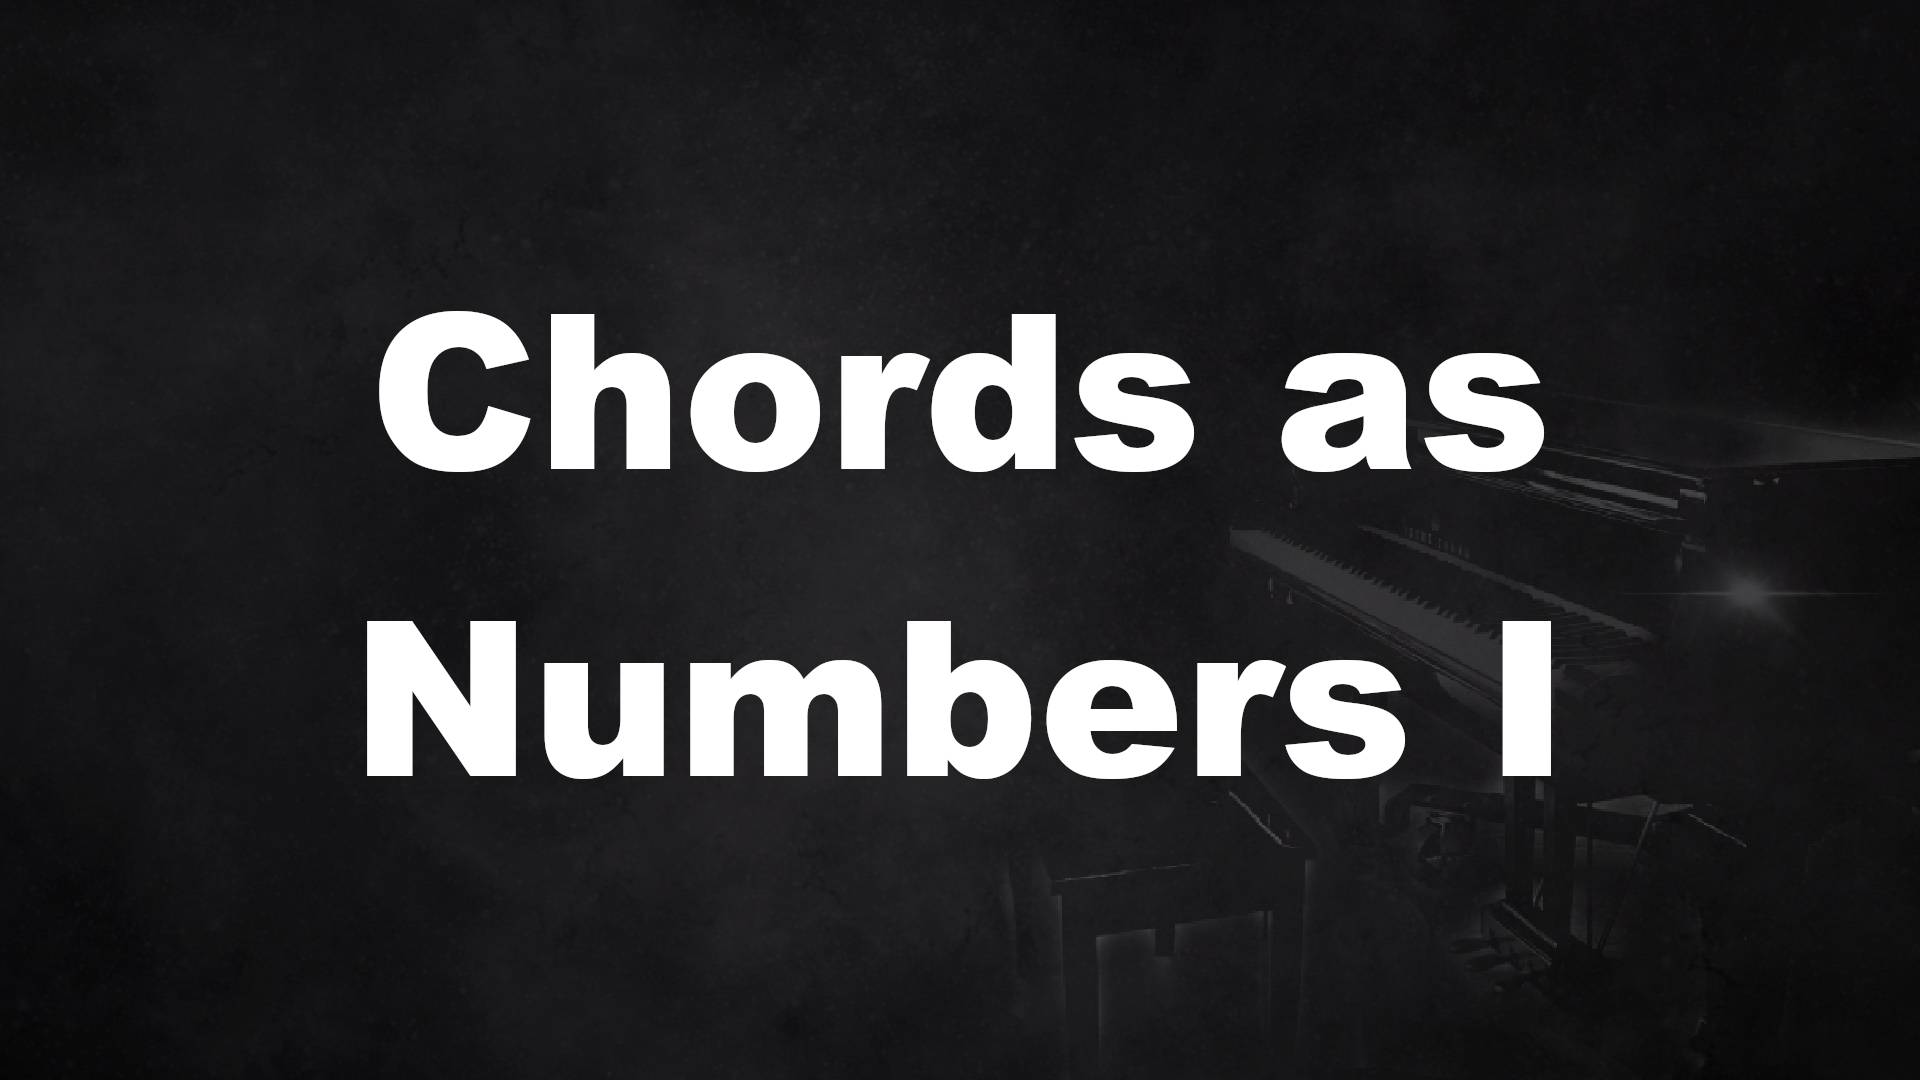 Chords as Numbers I